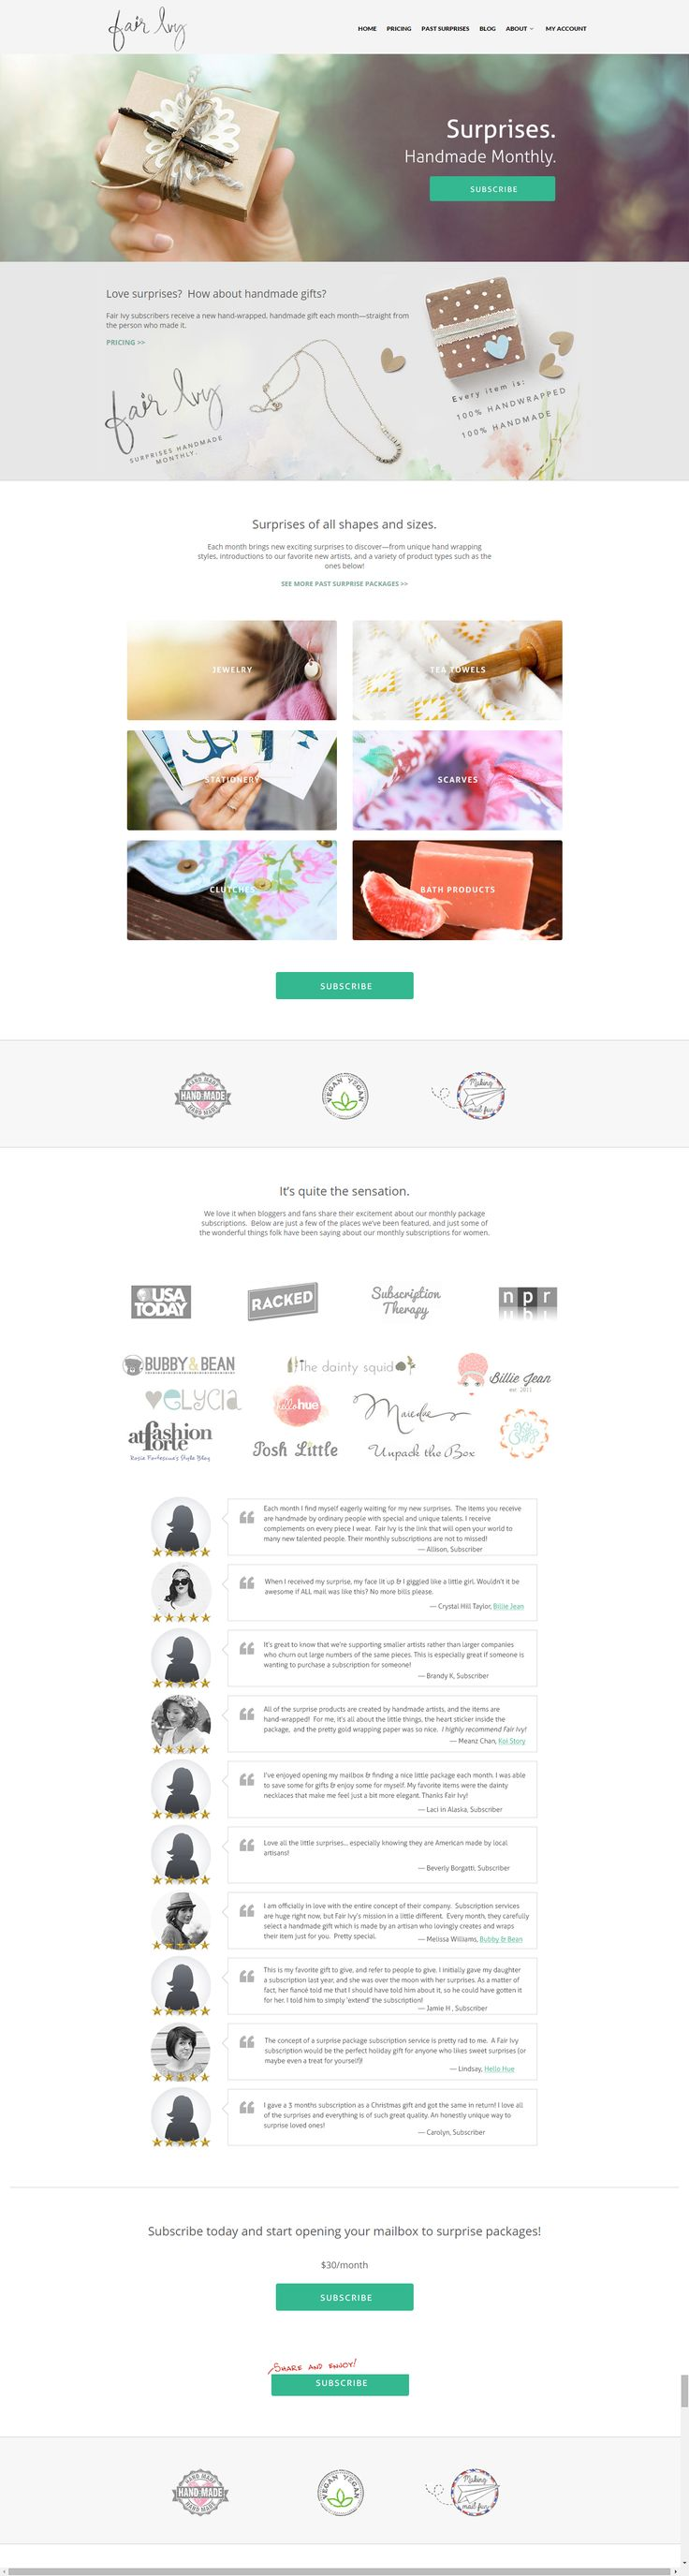 A lovely site for a subscription based service that supports handmade businesses and send unique surprise gifts. Built using The Retailer Responsive Wordpress Theme: #siteoftheday #website #wordpress #handmade #surprise https://themeforest.net/item/the-retailer-responsive-wordpress-theme/4287447?utm_source=pinterest.com&utm_medium=social&utm_content=fair-ivy&utm_campaign=showcase